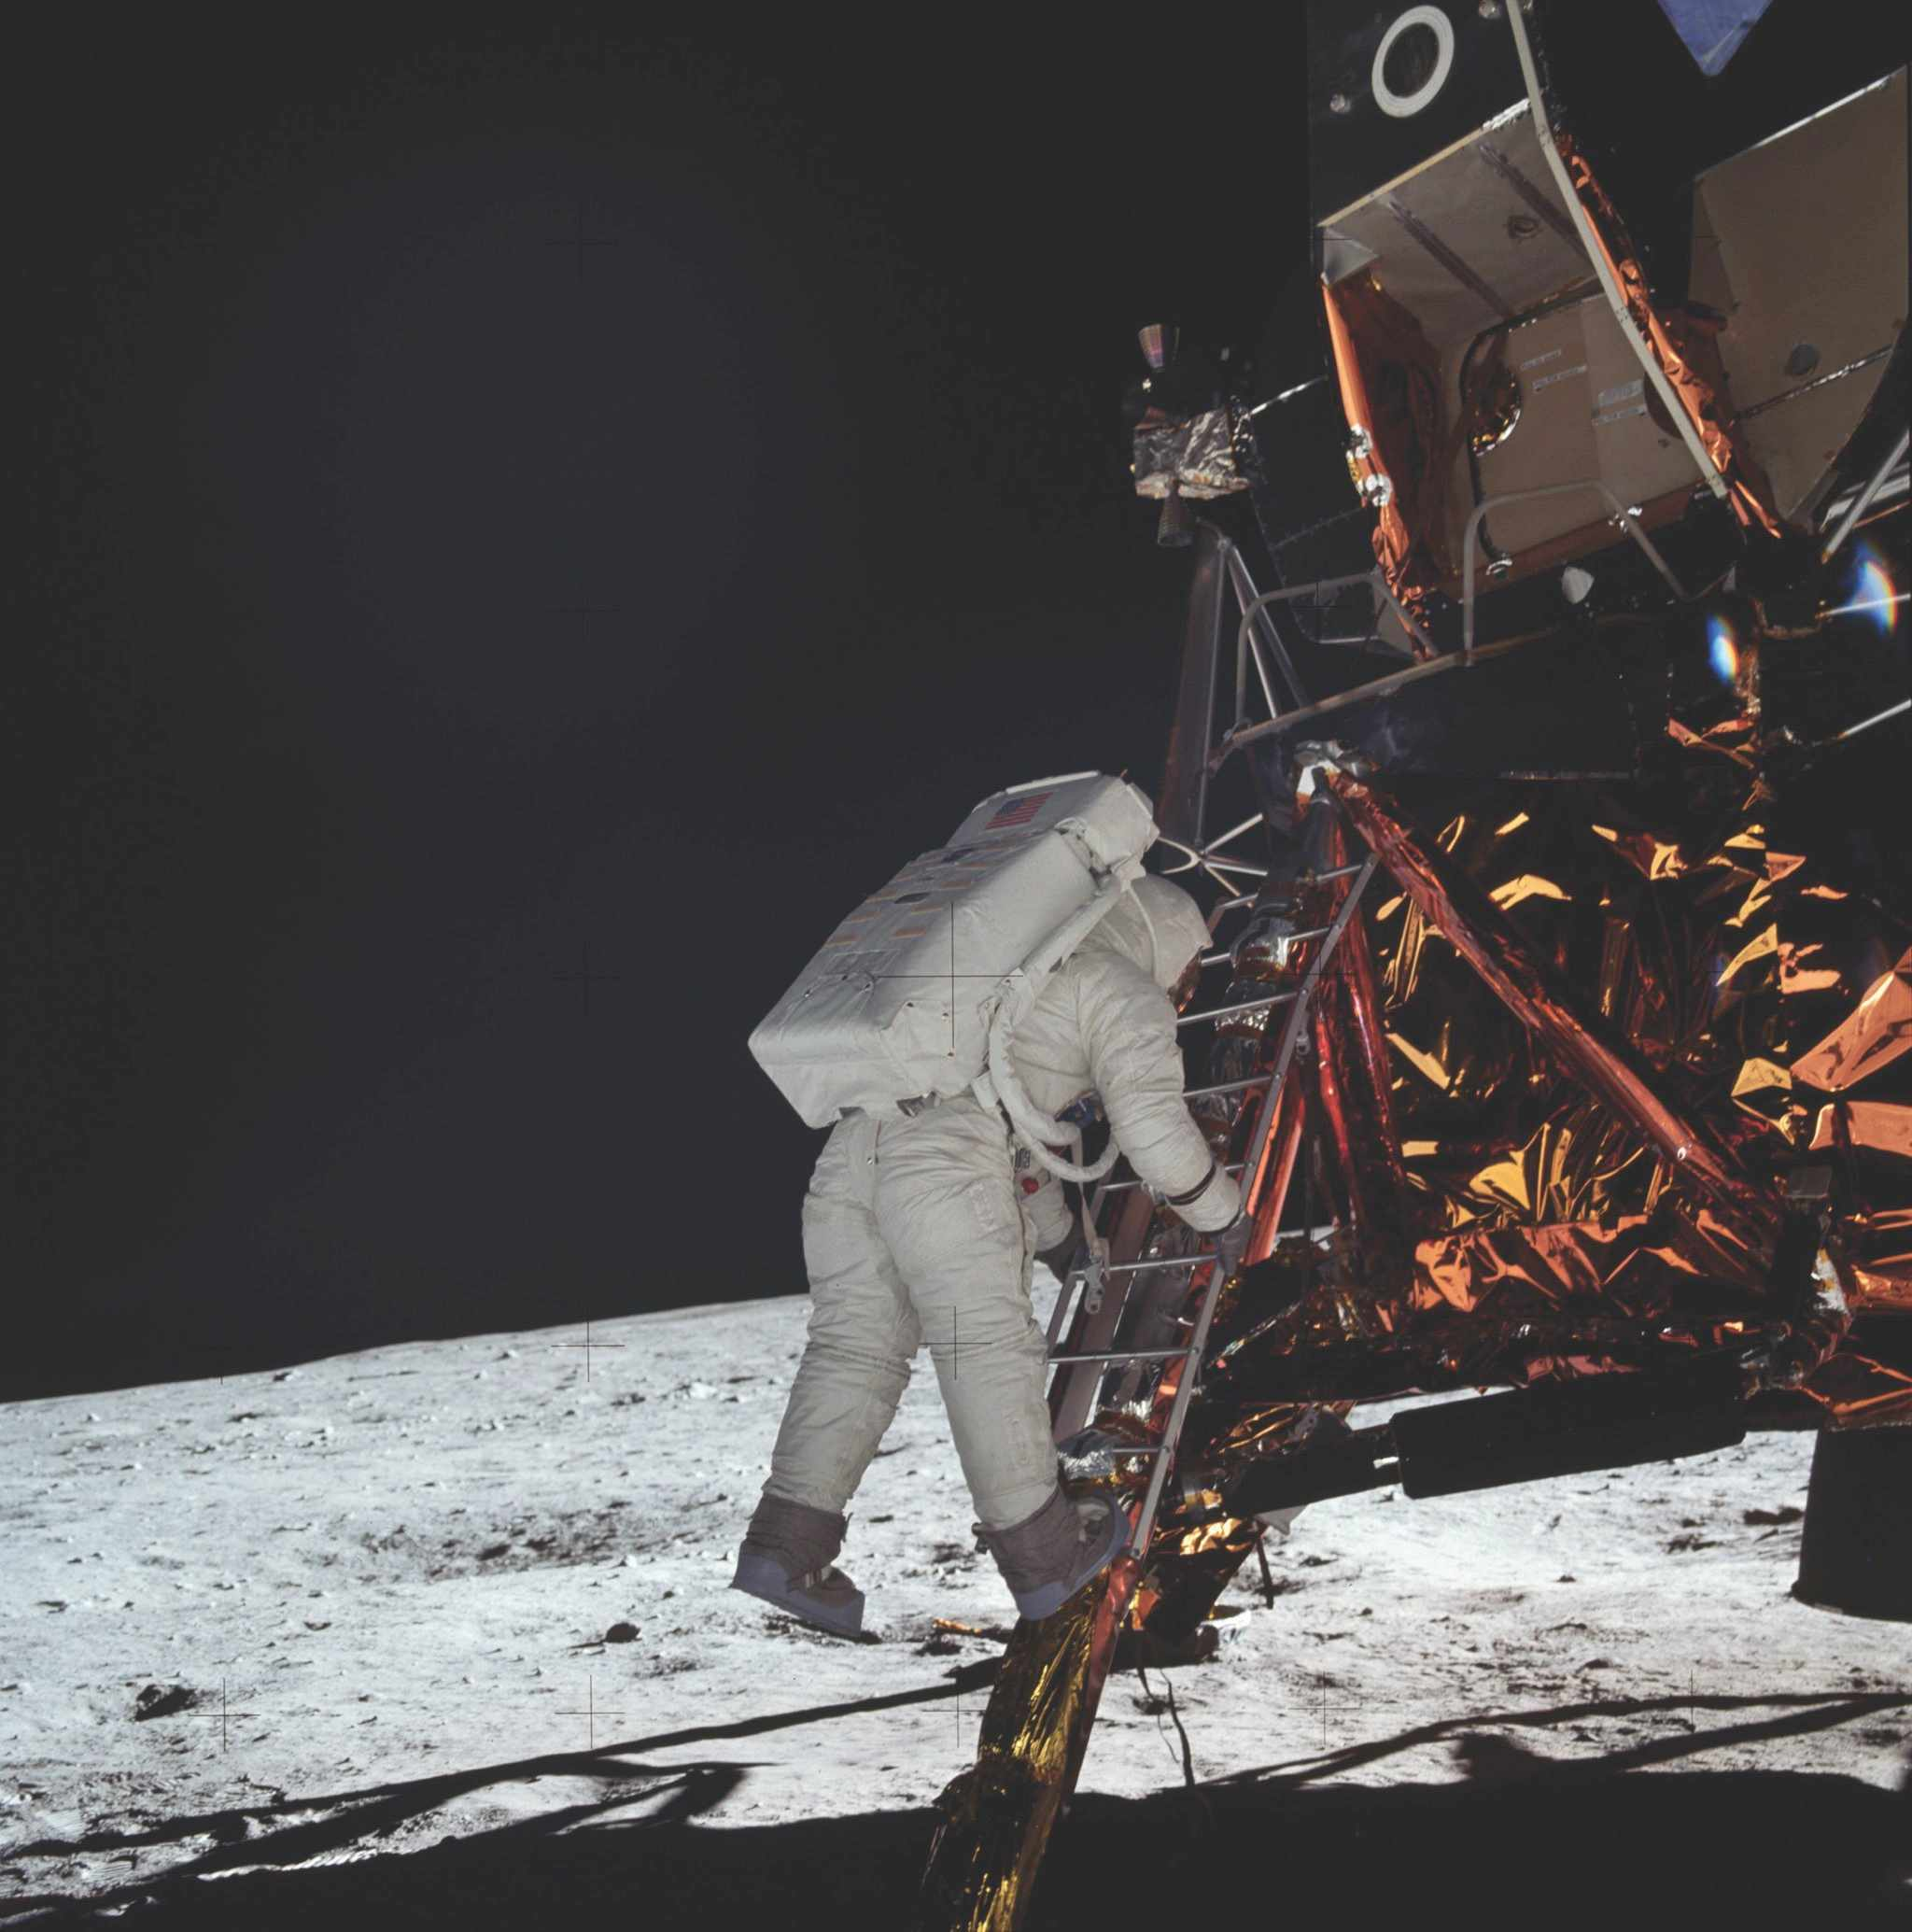 Half an hour after stepping out of the lunar module, Armstrong captures shots of his crew-mate Aldrin making the same feet-first exit onto the Moon. It takes Aldrin three minutes to make it to the bottom of the lunar module's ladder. © NASA/JPL